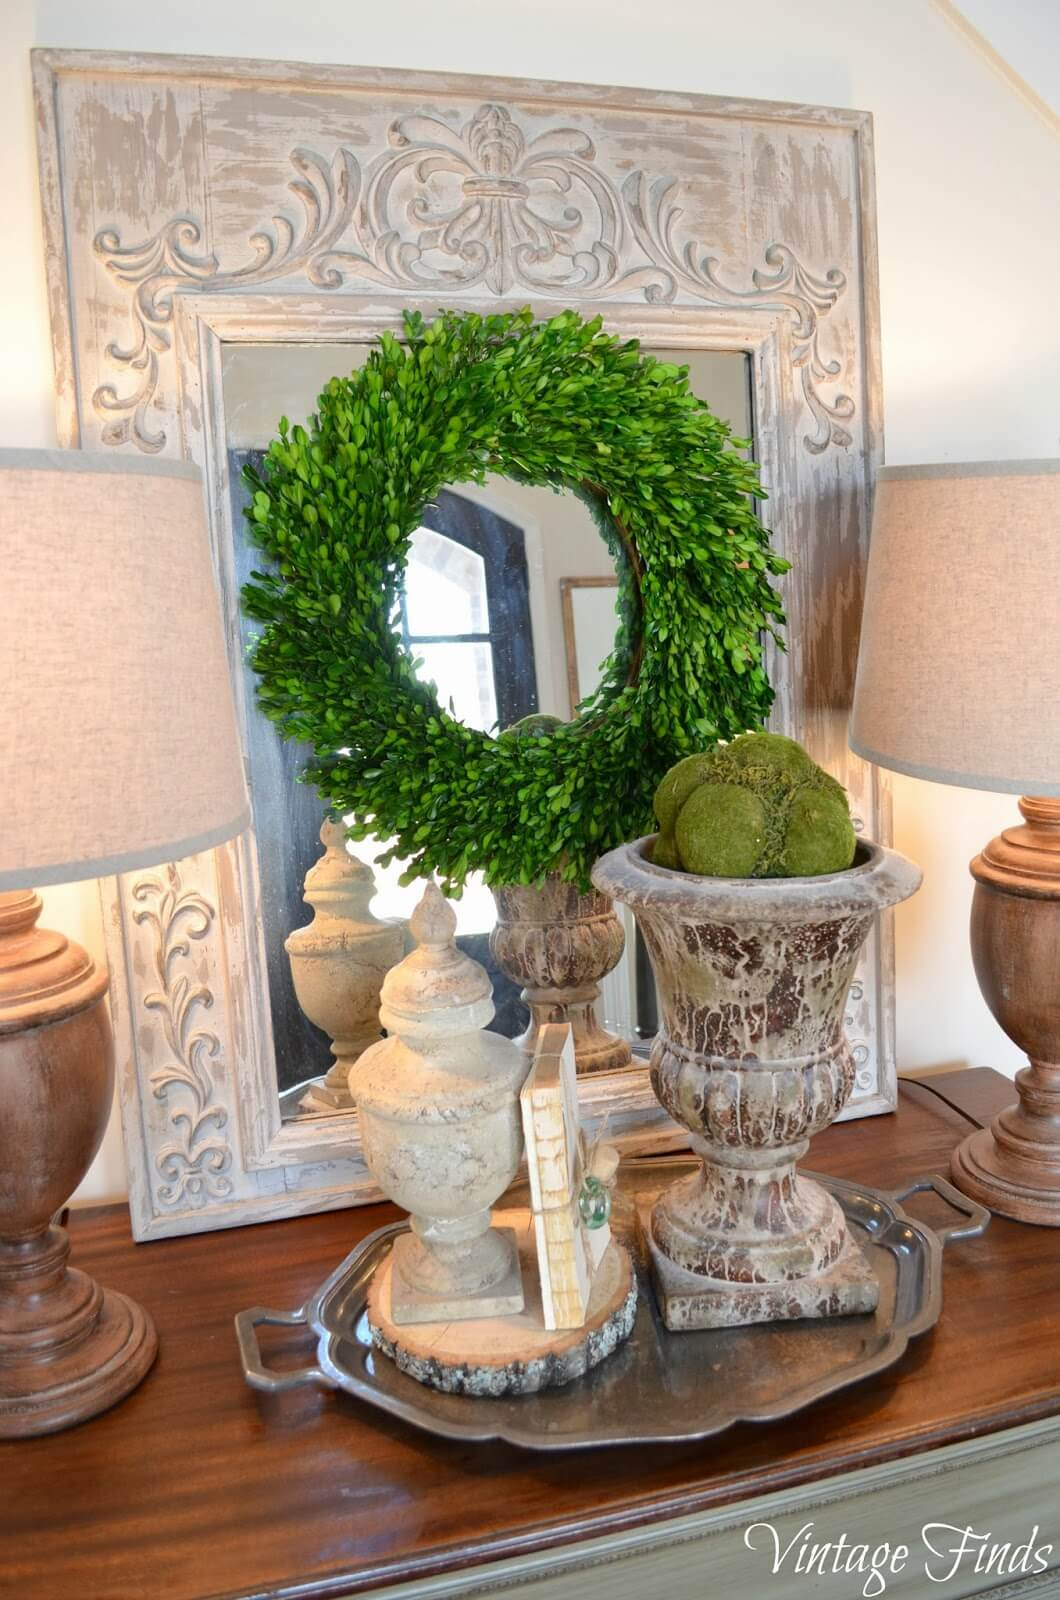 Green Moss Spiral Wreath with Mirror